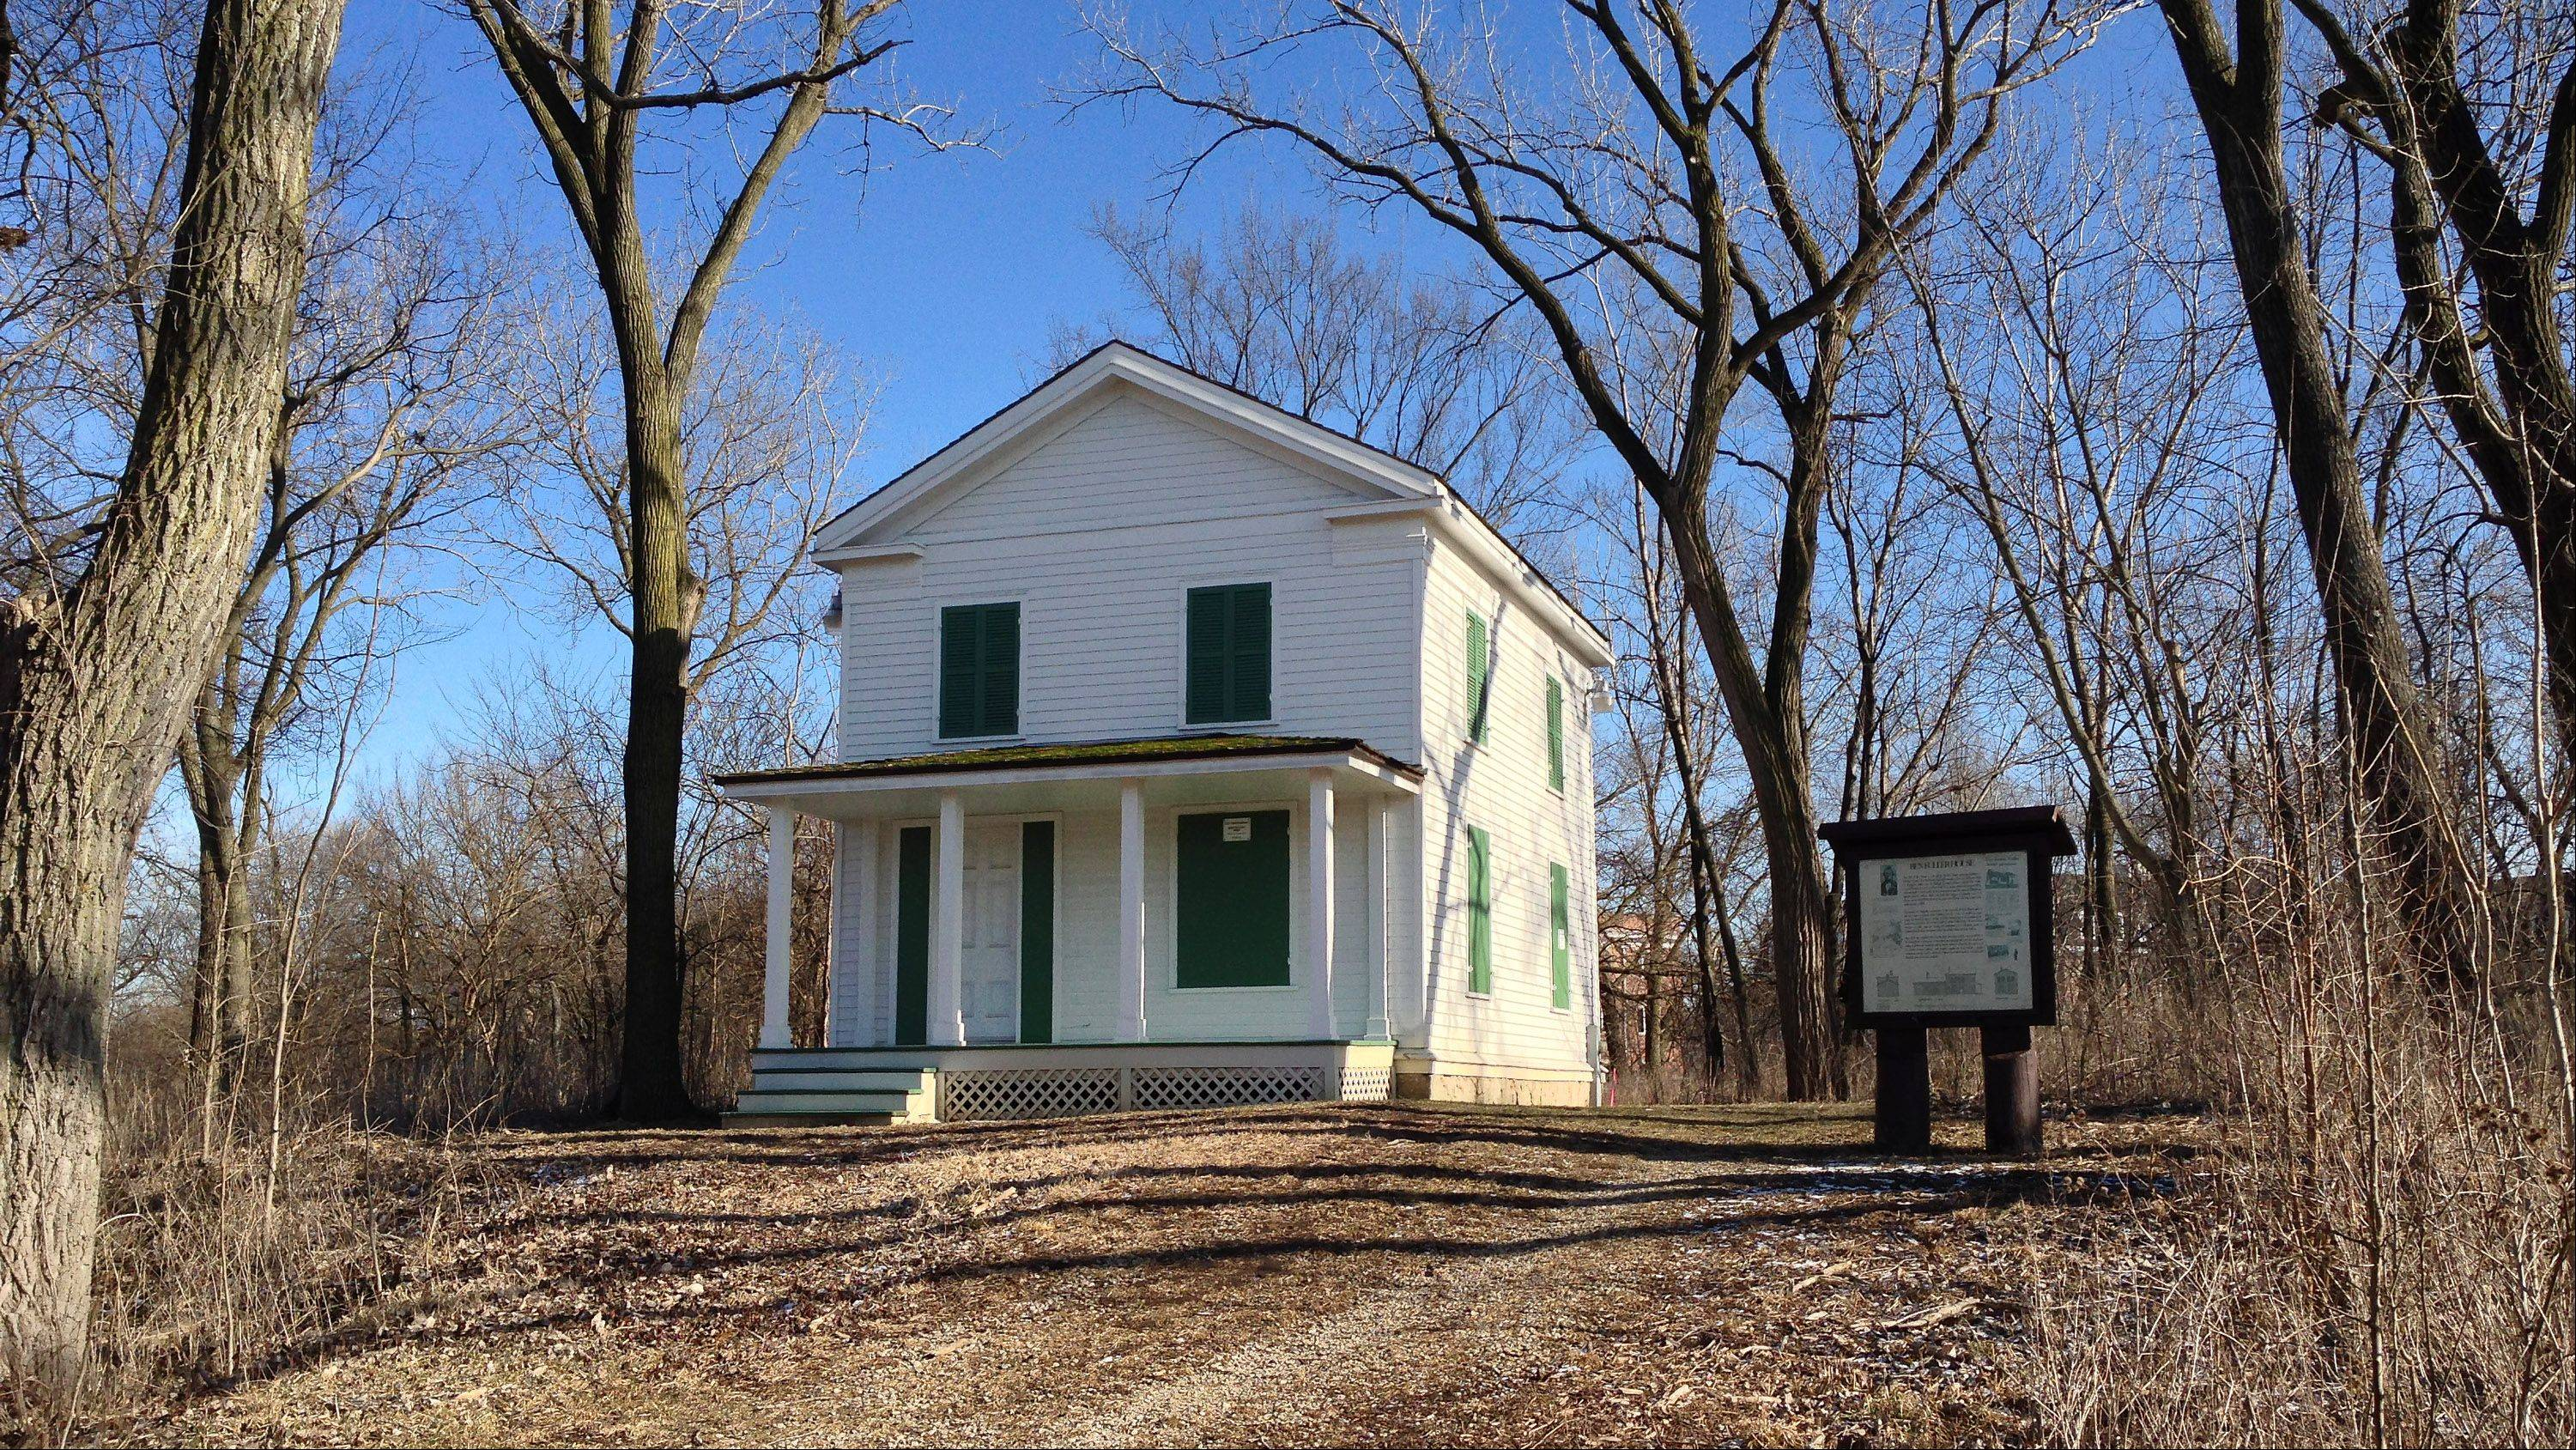 Ben Fuller House: Built sometime between 1835 and 1842, the Greek Revival-style farmhouse was moved to land owned by the forest preserve district in 1981.